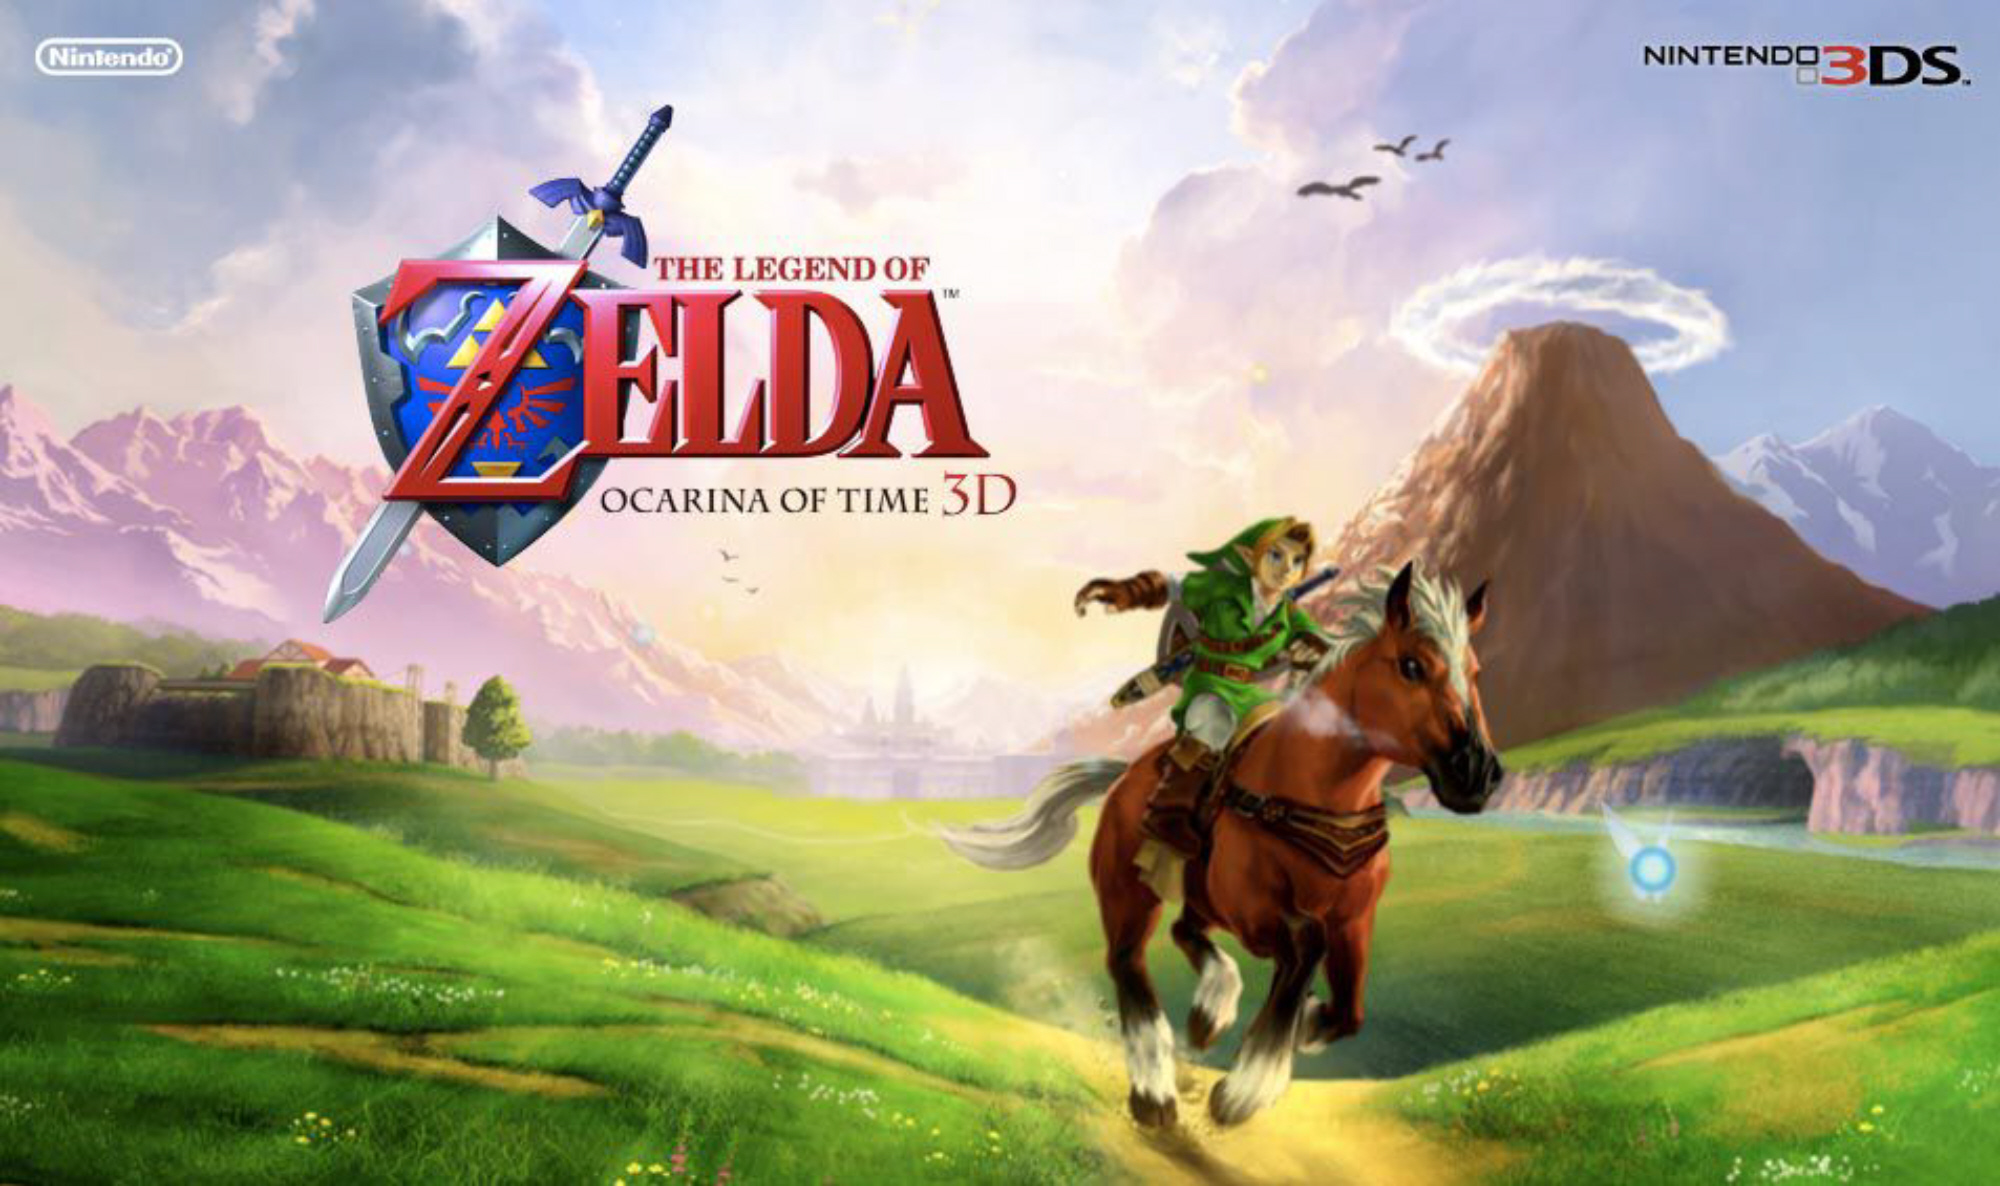 Legend of Zelda Ocarina of Time 3D Game Guide